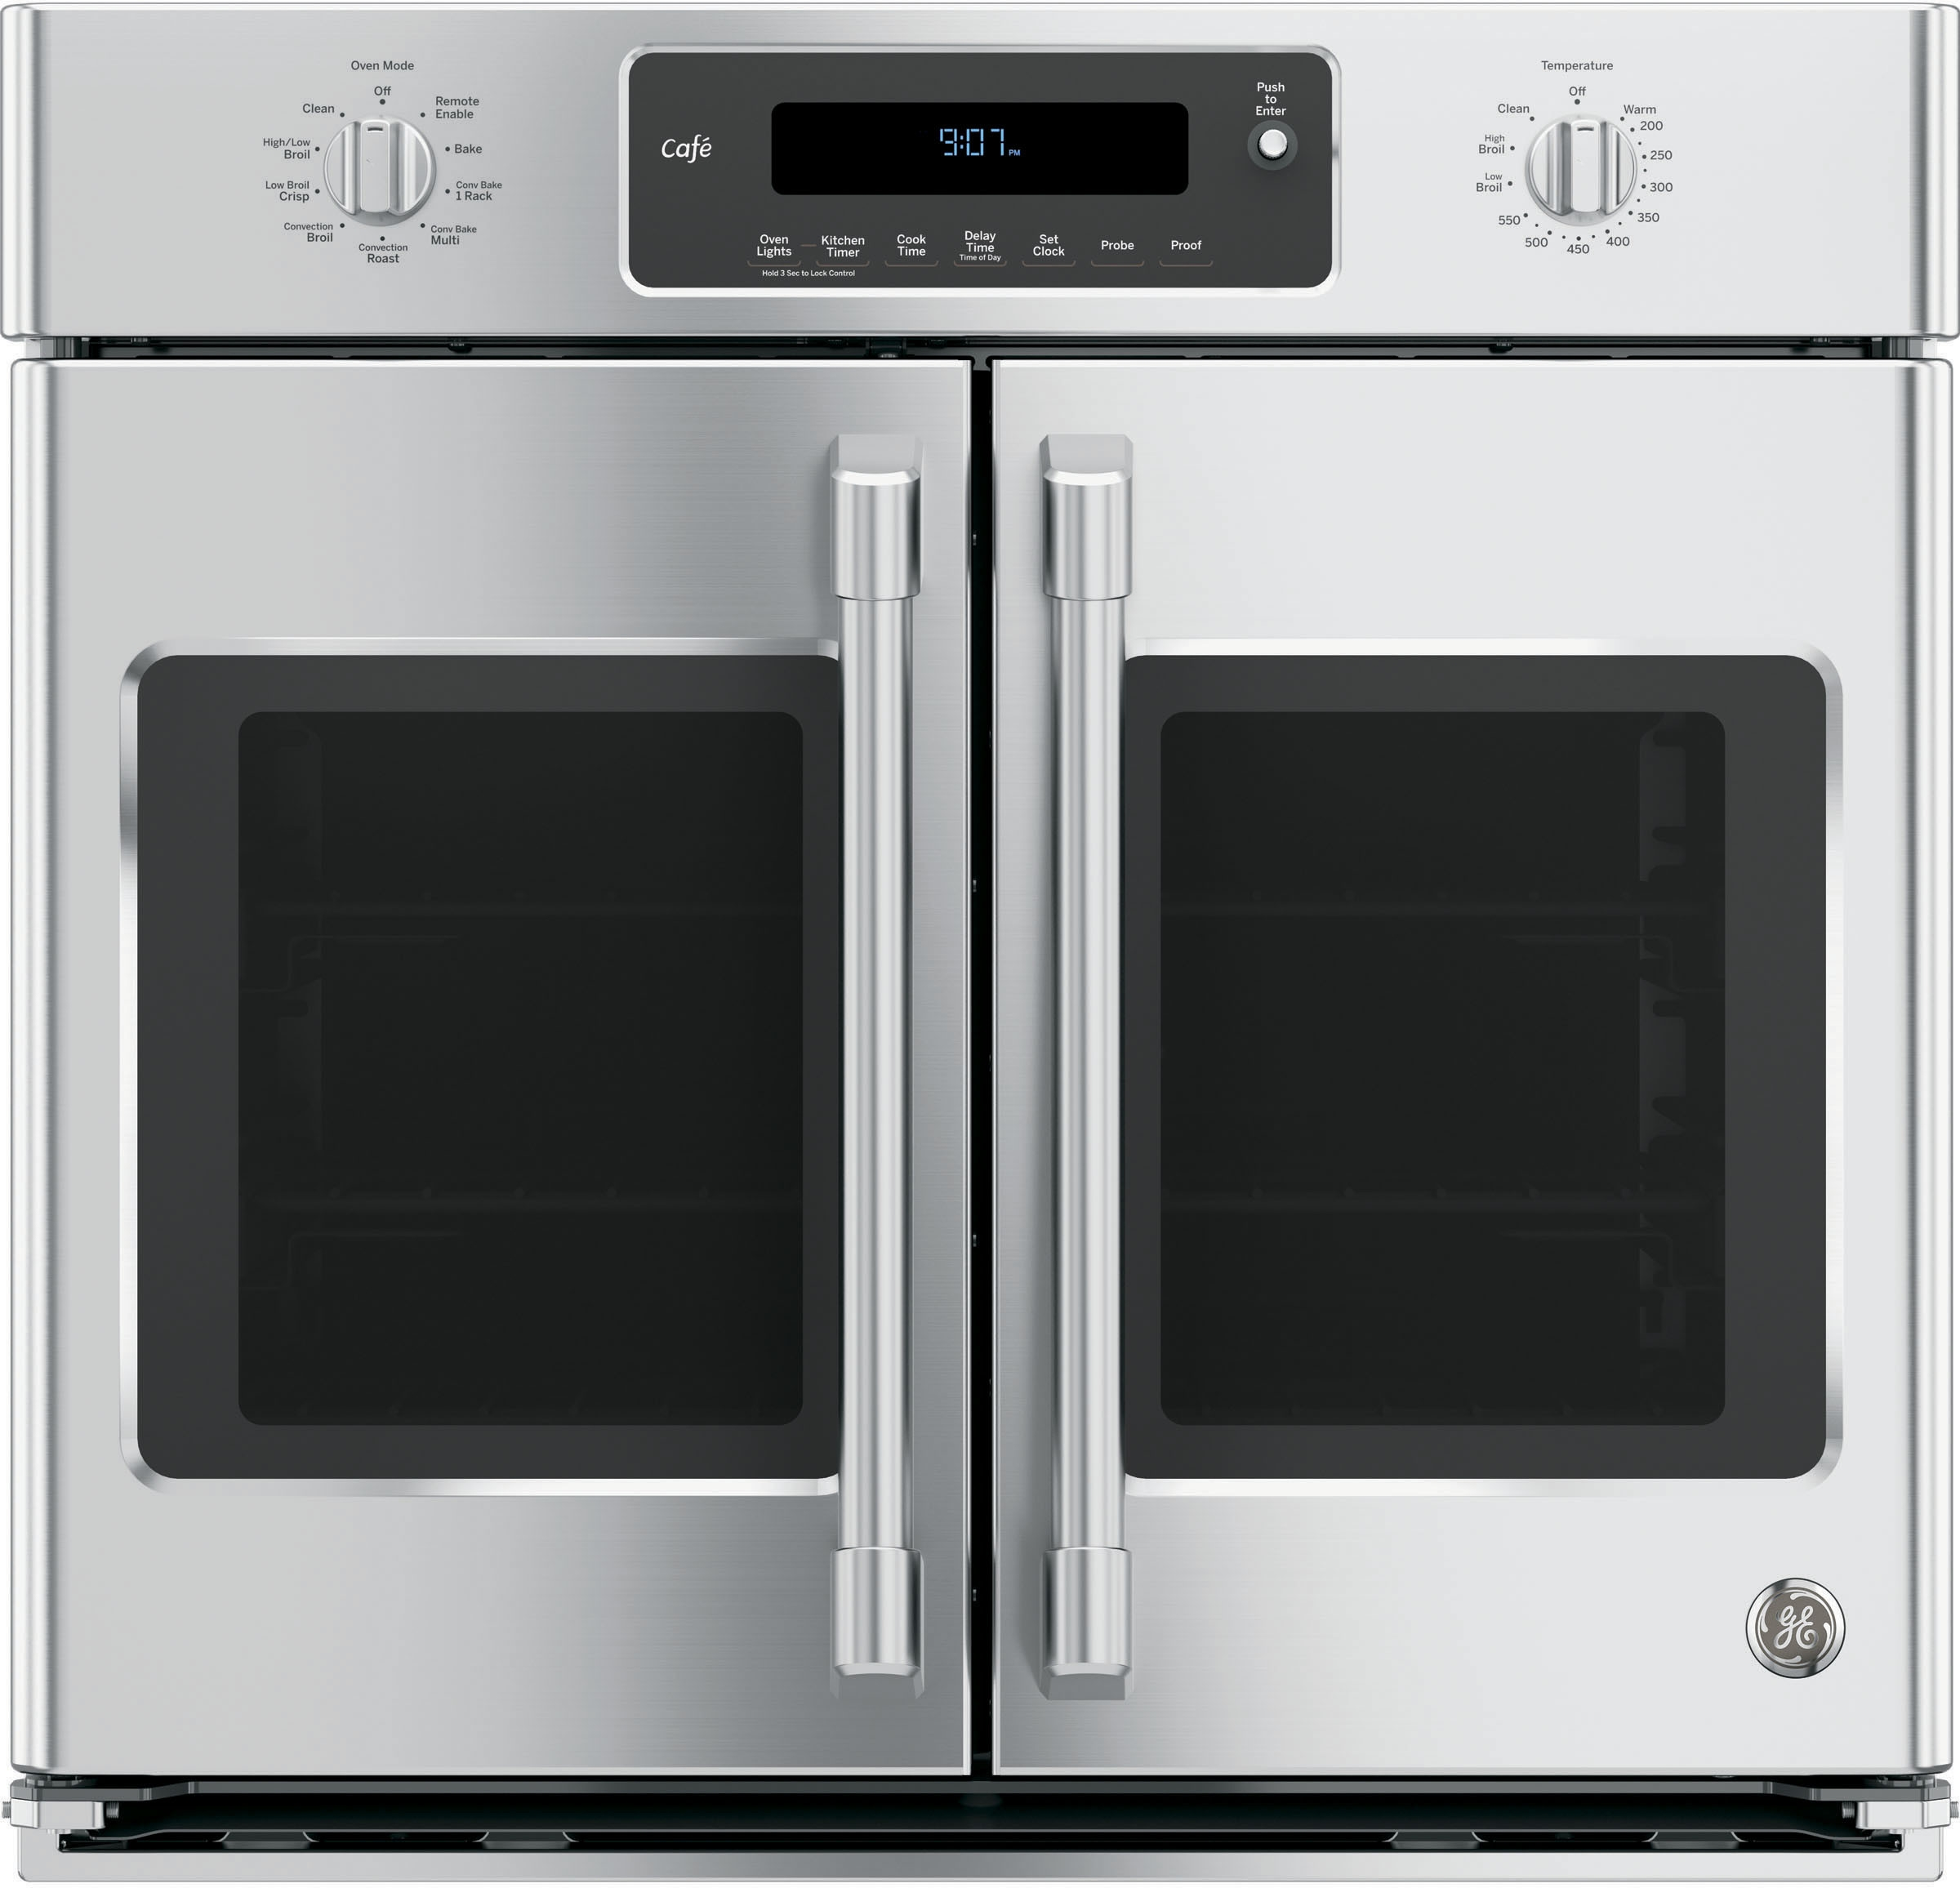 Wall Oven With Slide Under Doorsingle Wall Ovens Aj Madison Wall Ovens